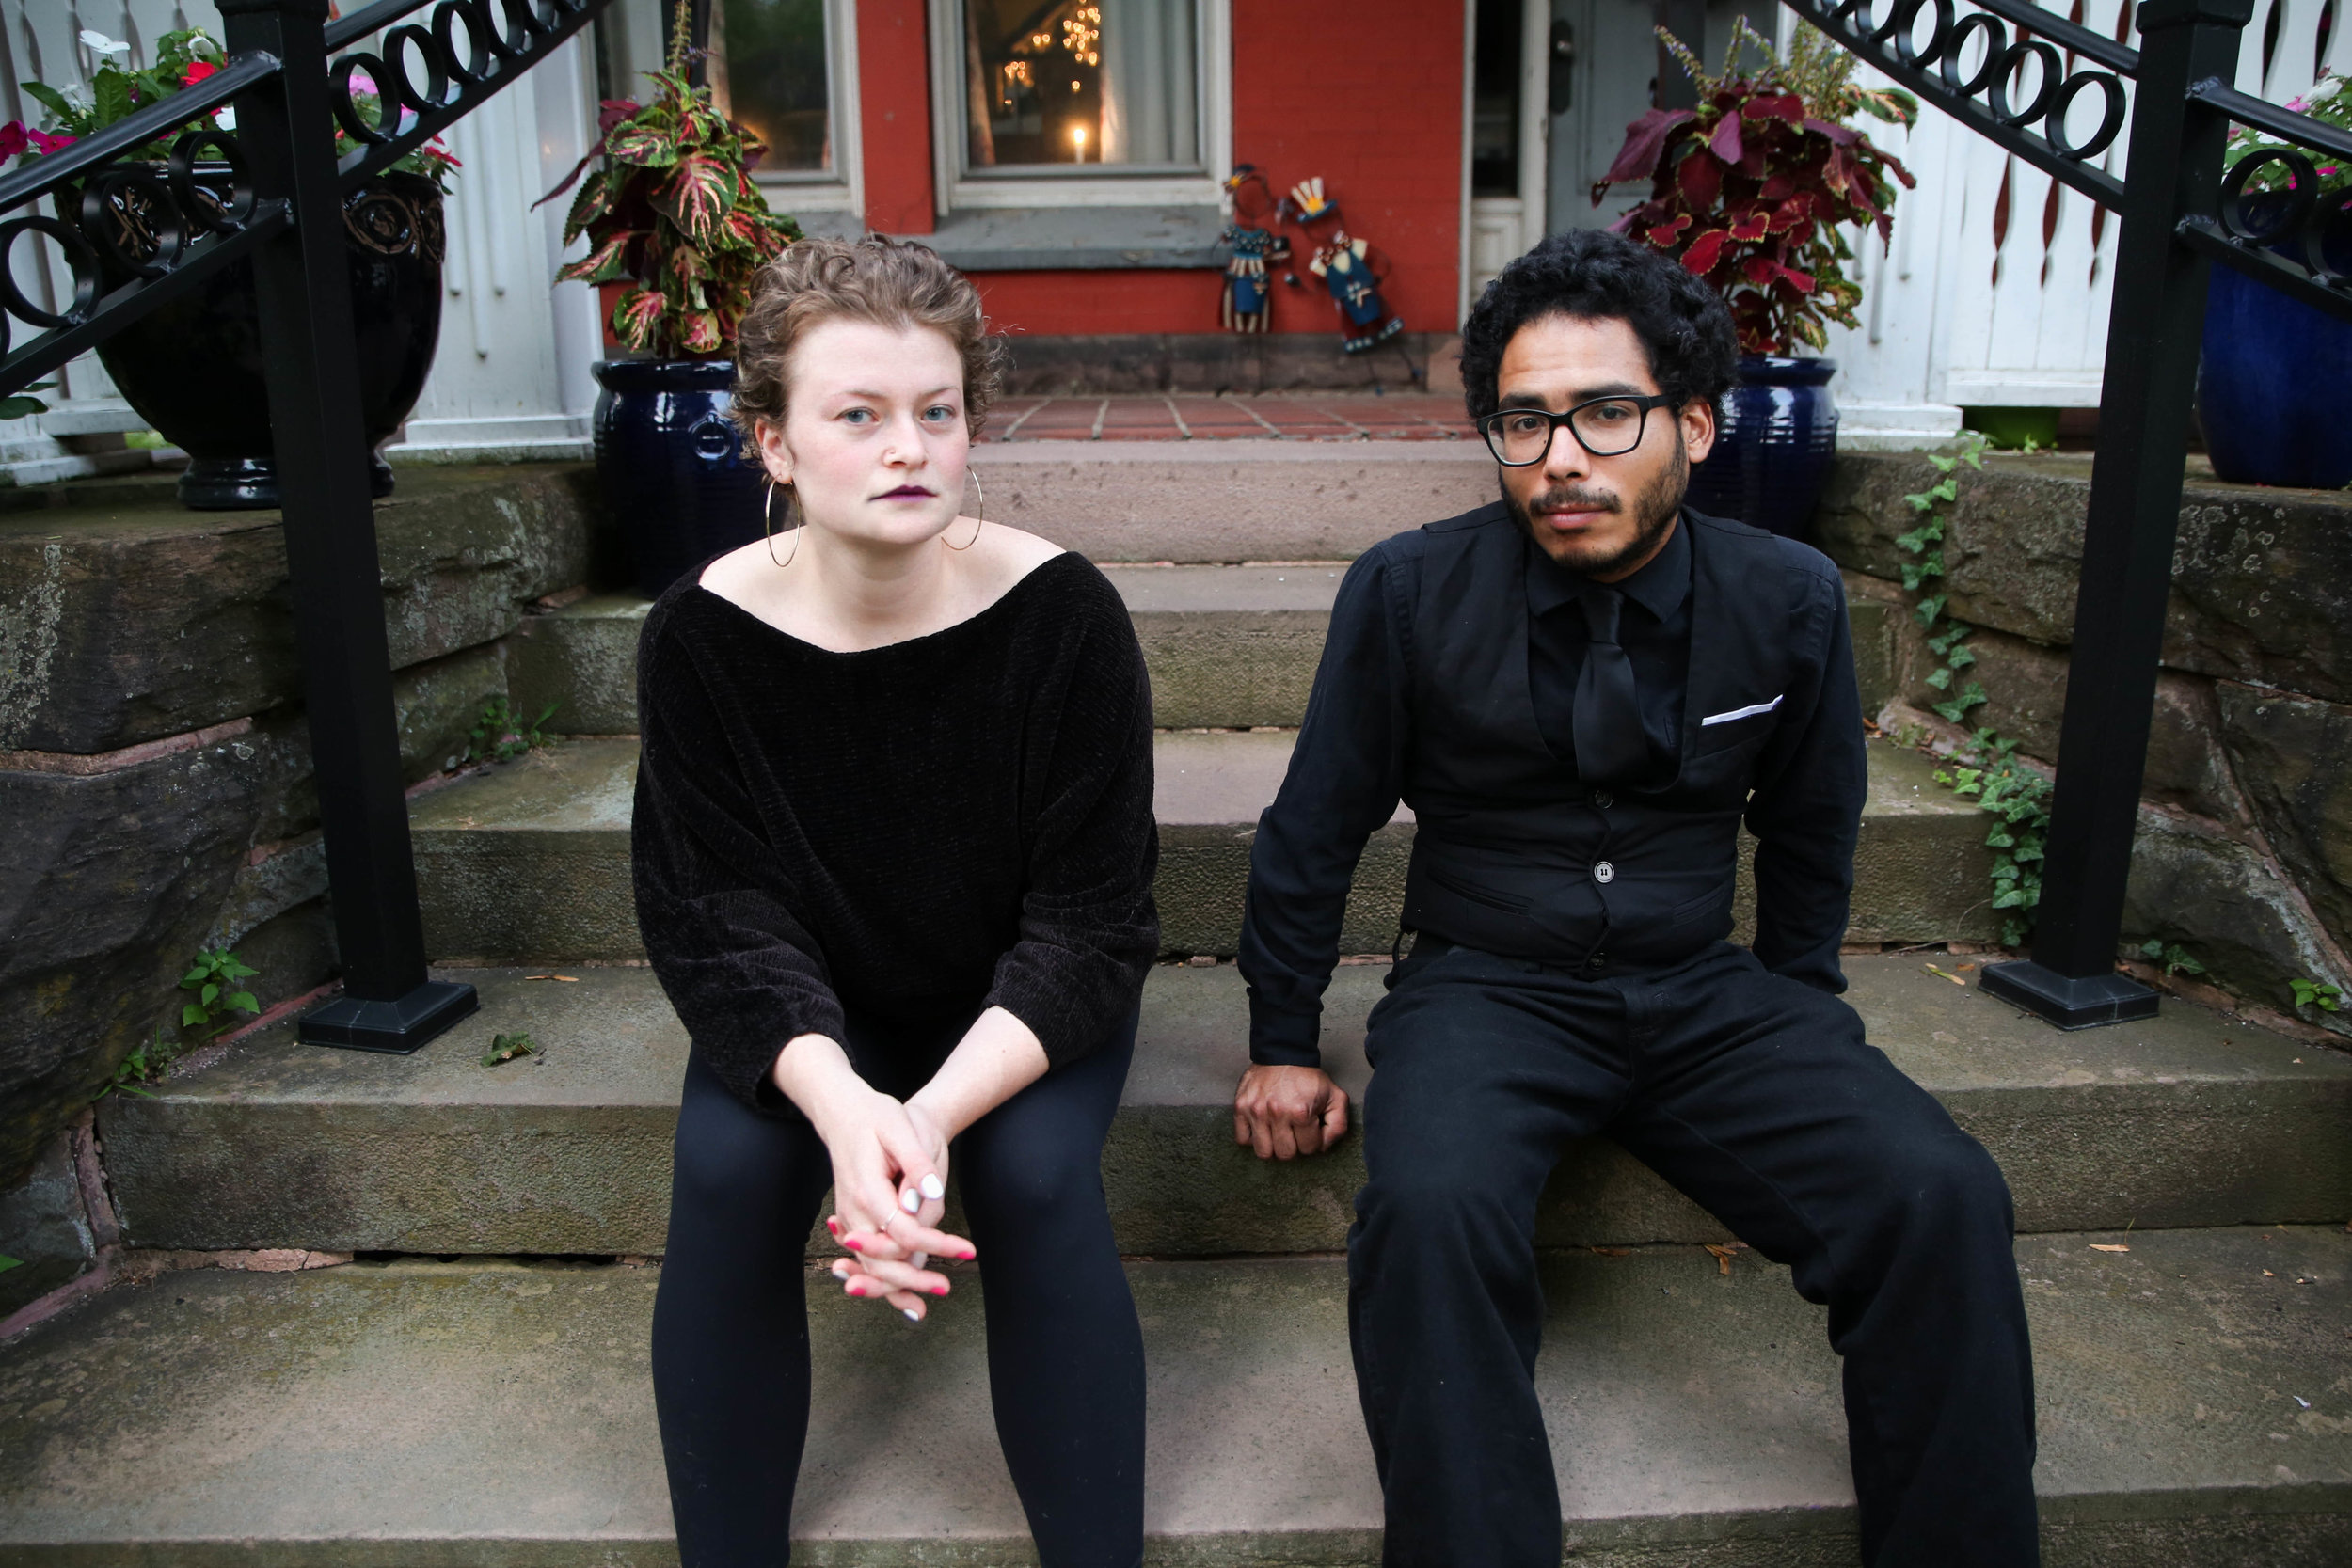 Biography - Formed in late 2017, Leyda is an Indie Rock/Baroque Pop band based in Buffalo, NY. While the band currently functions as a collective, it is headed by front-woman Saffi (piano/keyboard, vocals, clarinet), and Jose Rojas, virtuoso (violin).